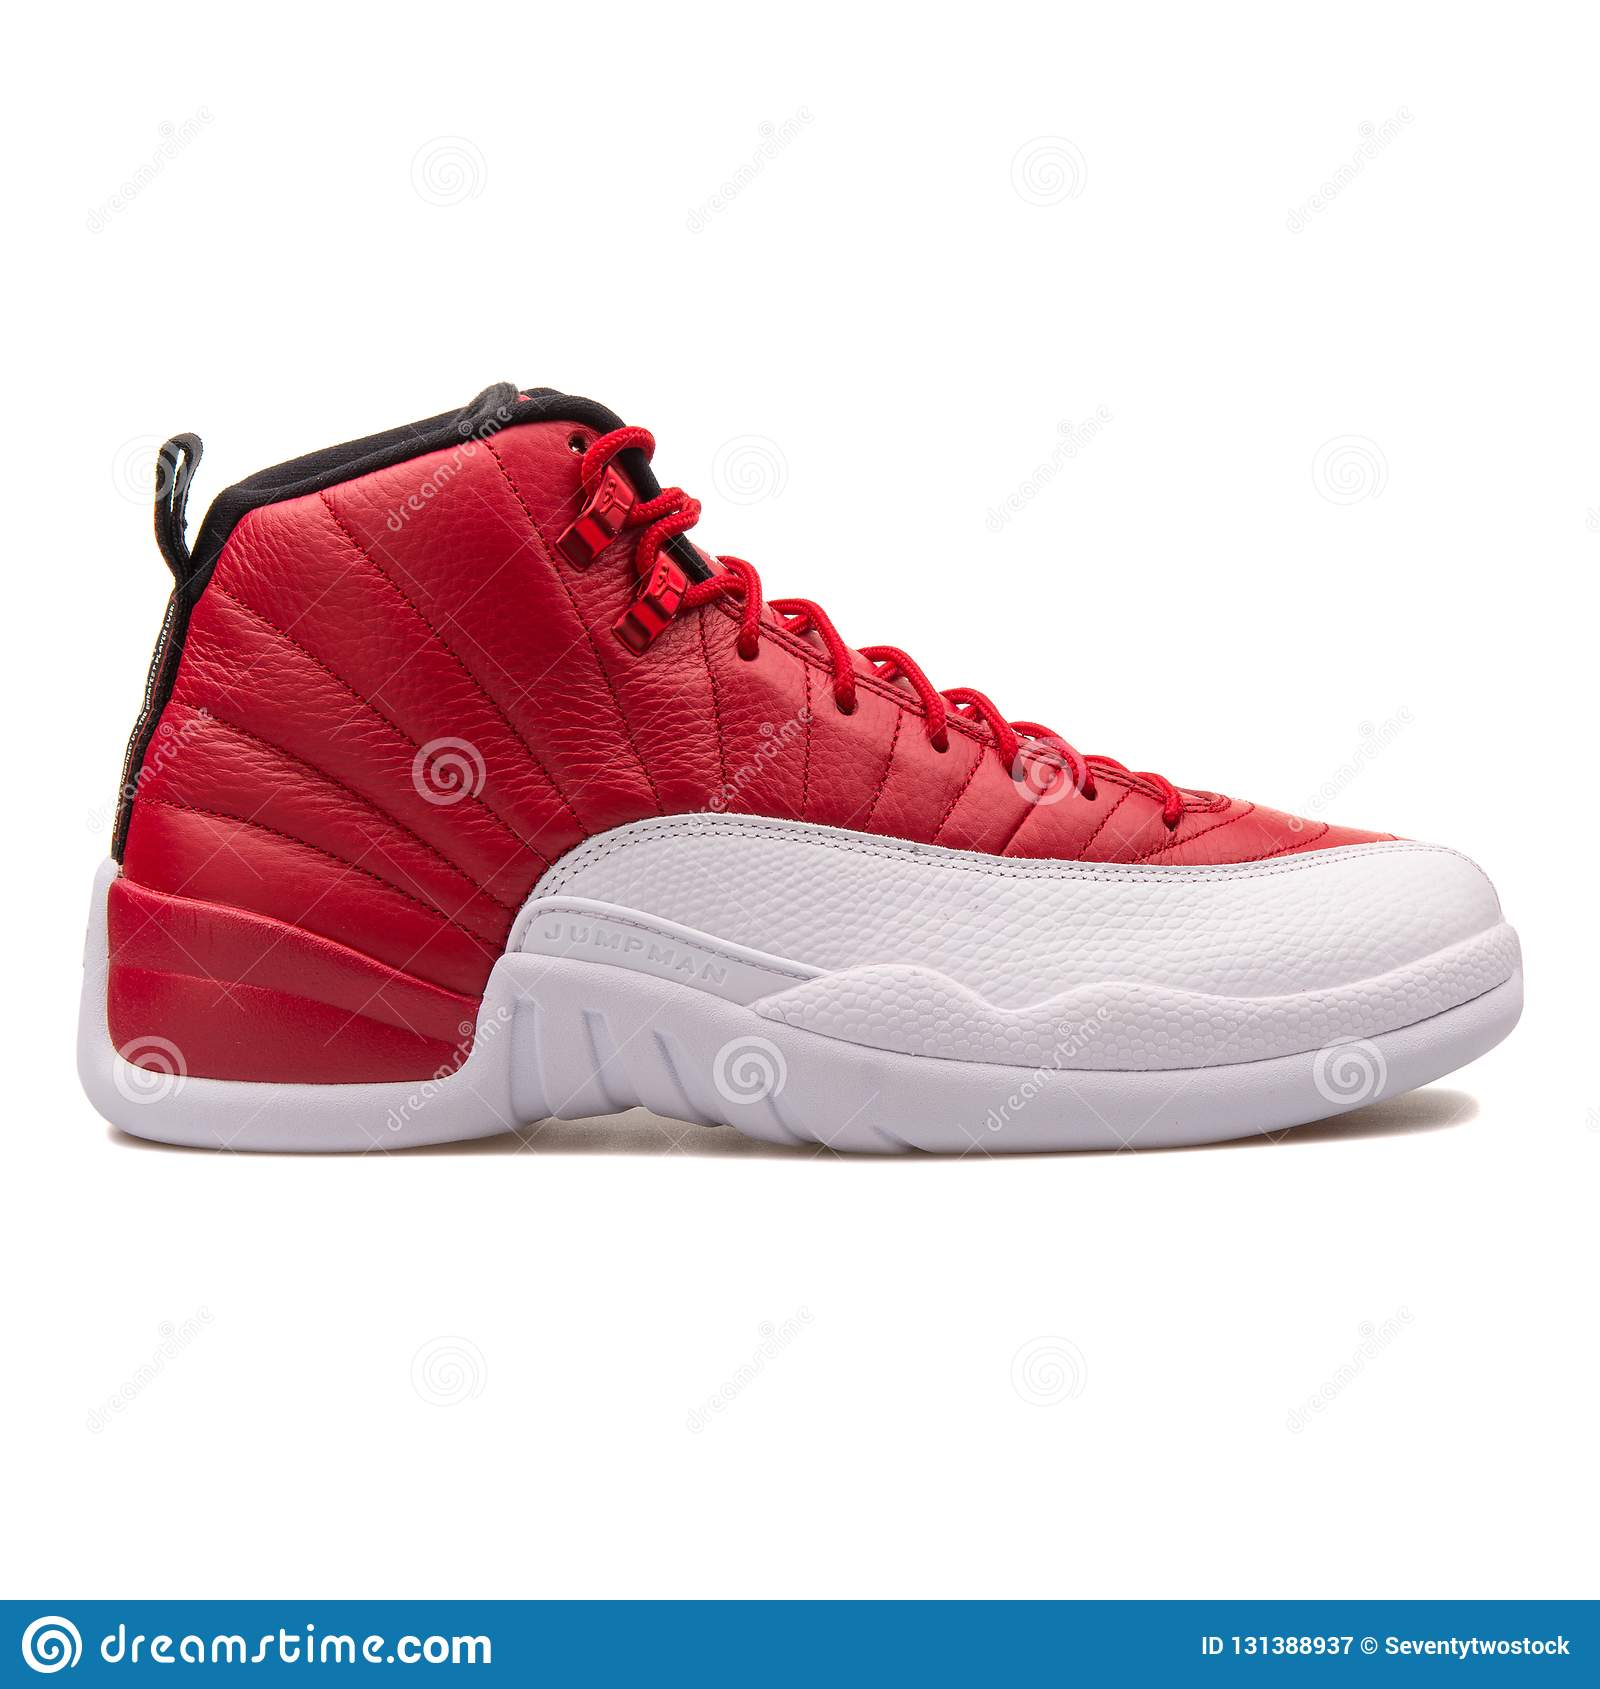 8e9976d976b Nike Air Jordan 12 Retro gym red-black and white sneaker isolated on white  background